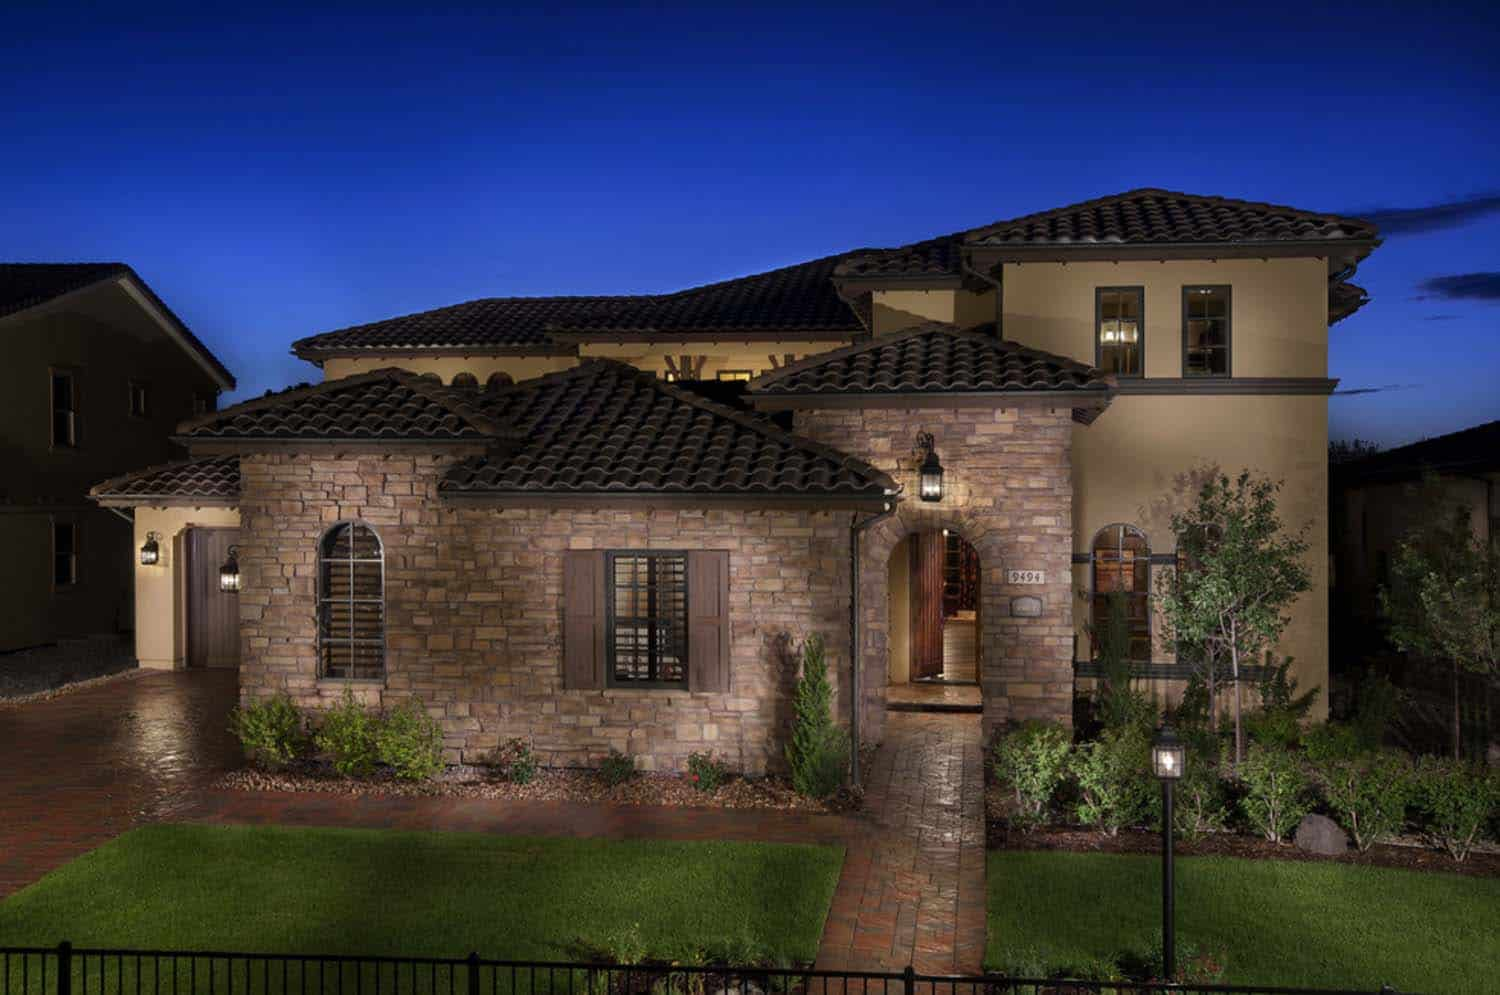 Mediterranean Style Home-Celebrity Communities-25-1 Kindesign